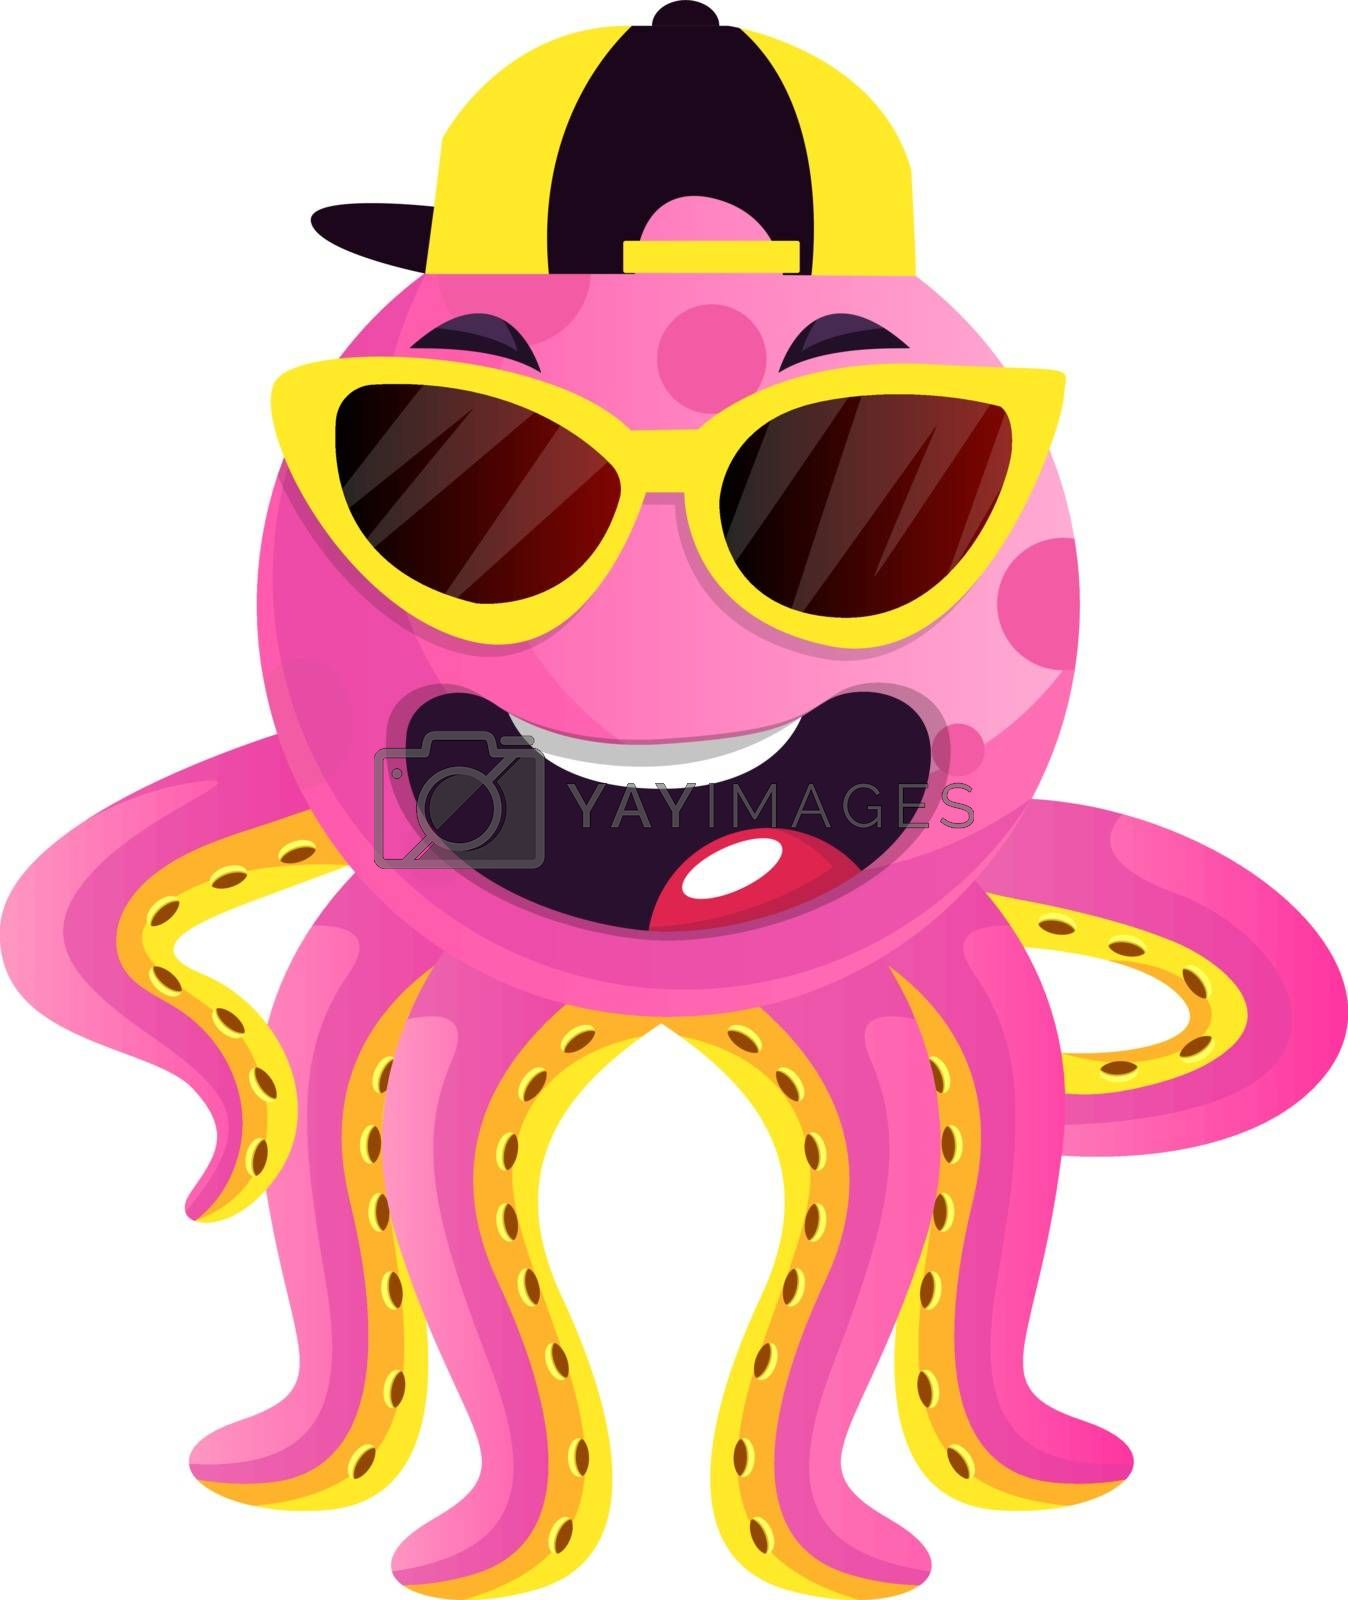 Royalty free image of Octopus with sunglasses and hat illustration vector on white bac by Morphart